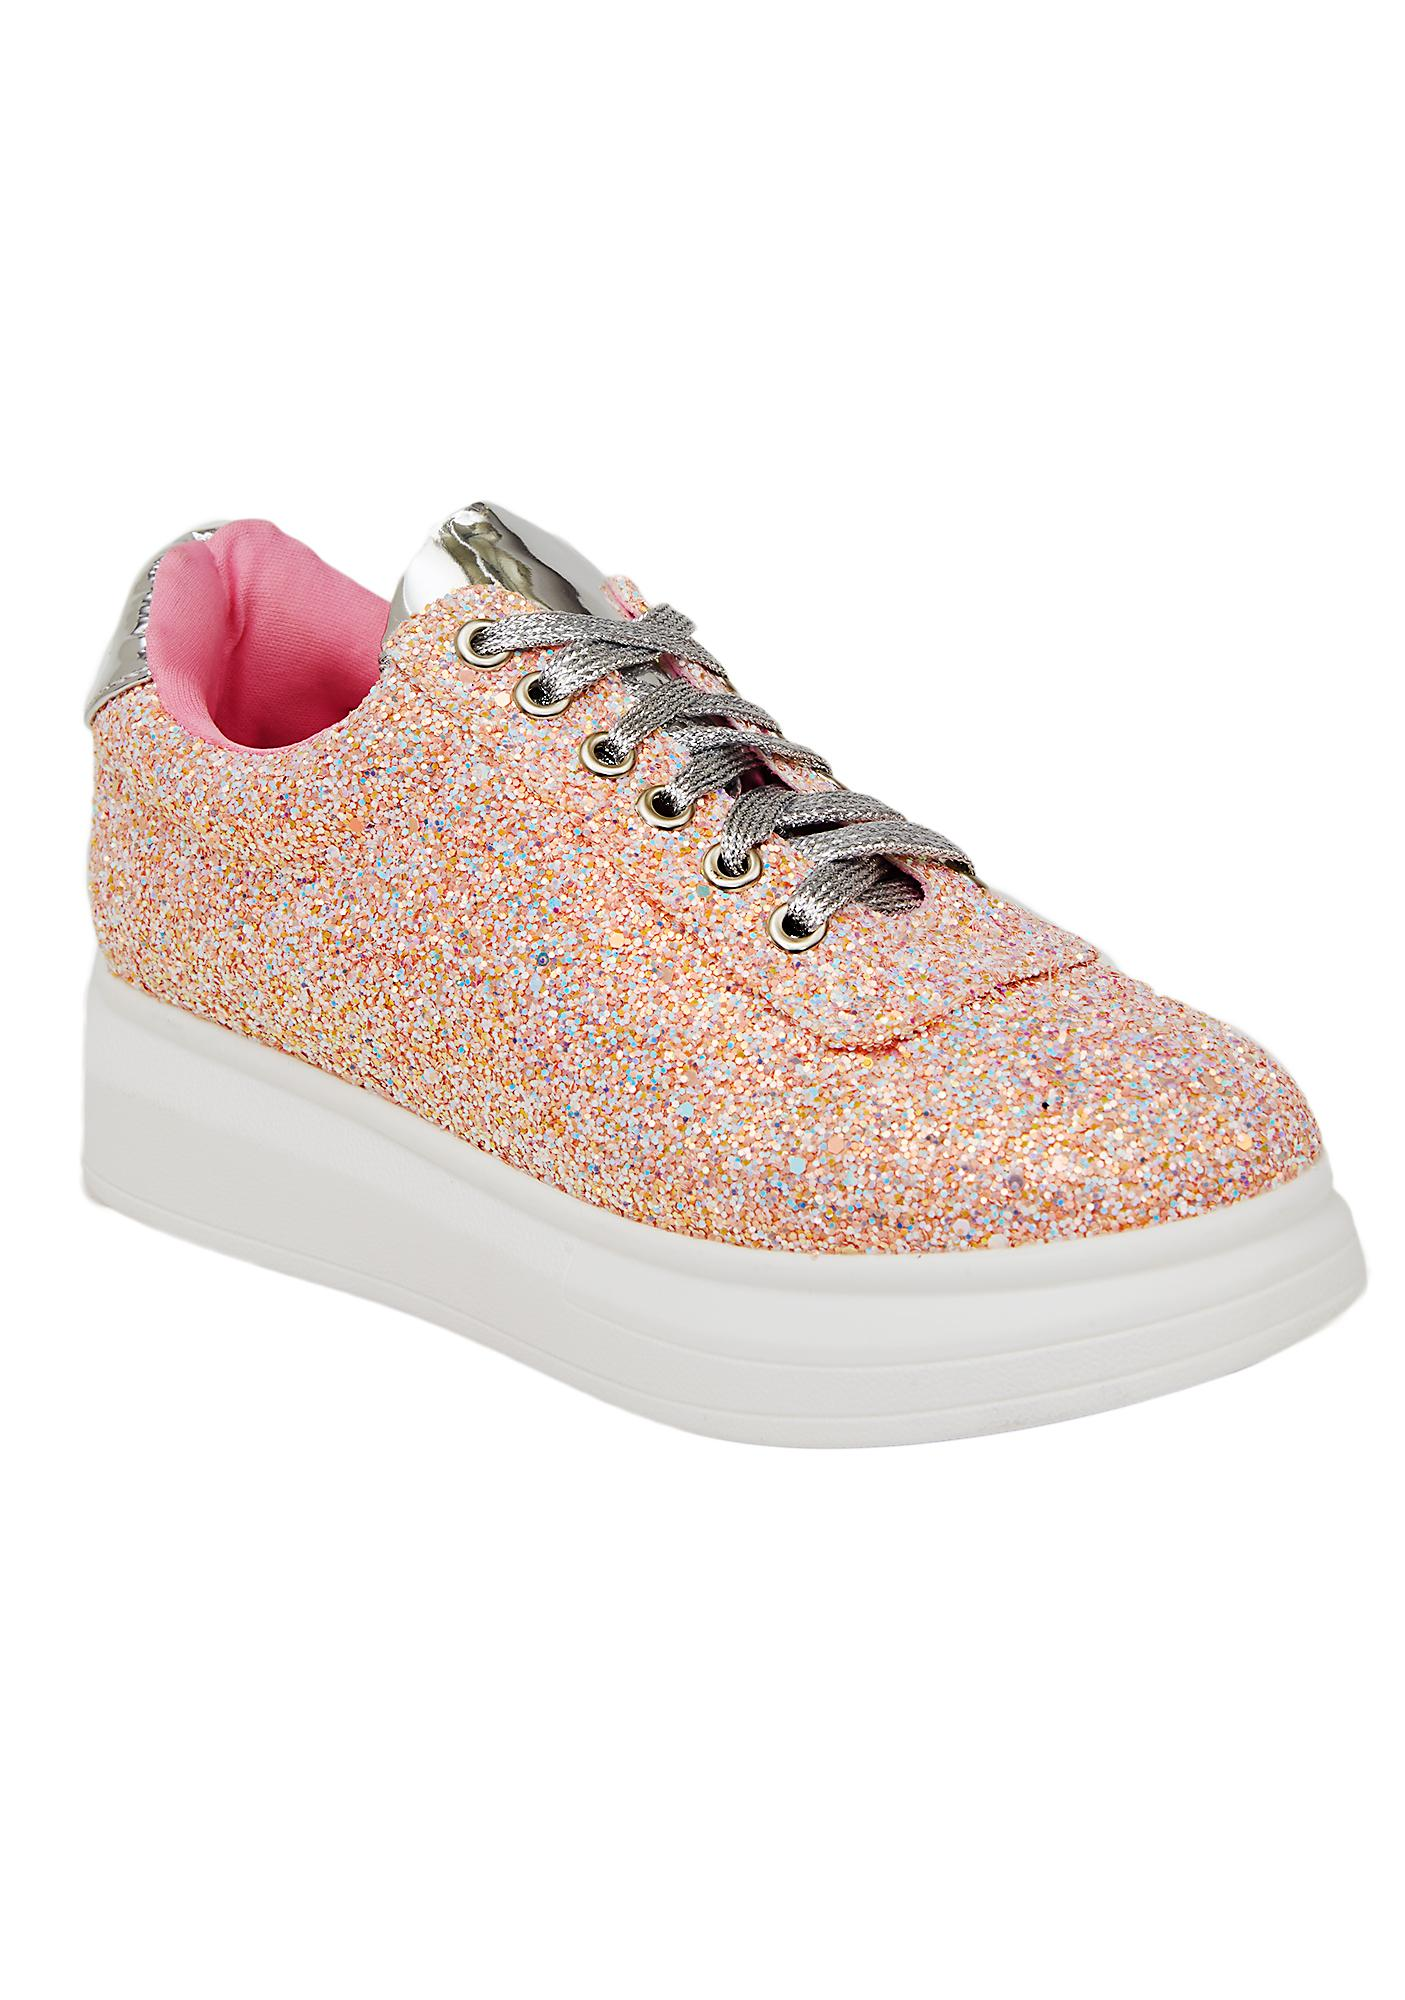 Candy Sparkle Stomp Glitter Sneakers